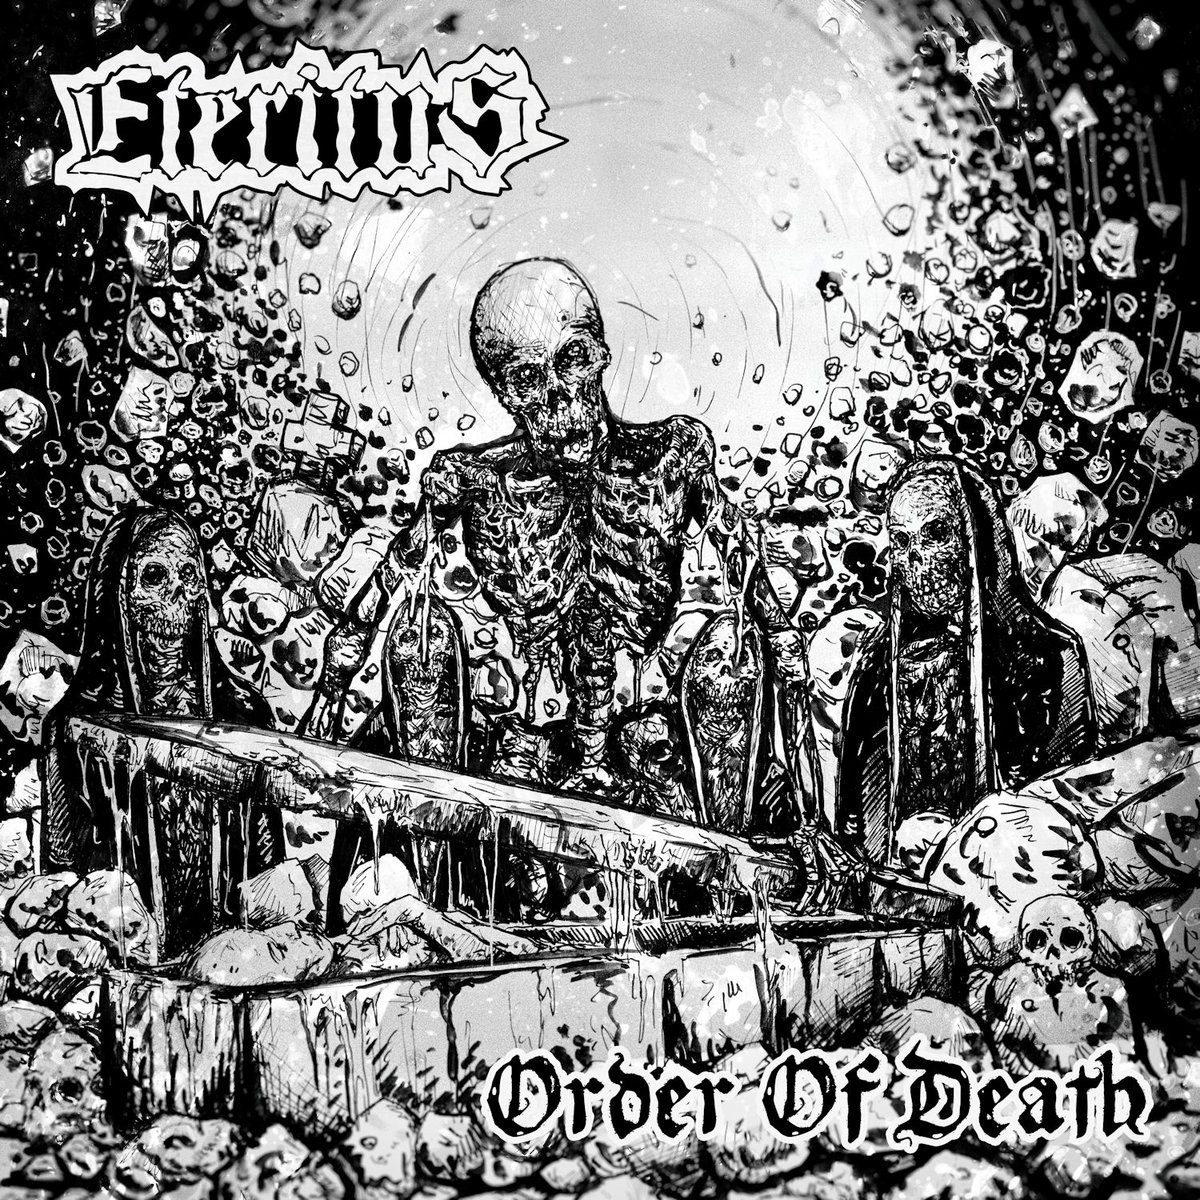 ETERITUS Order of Death